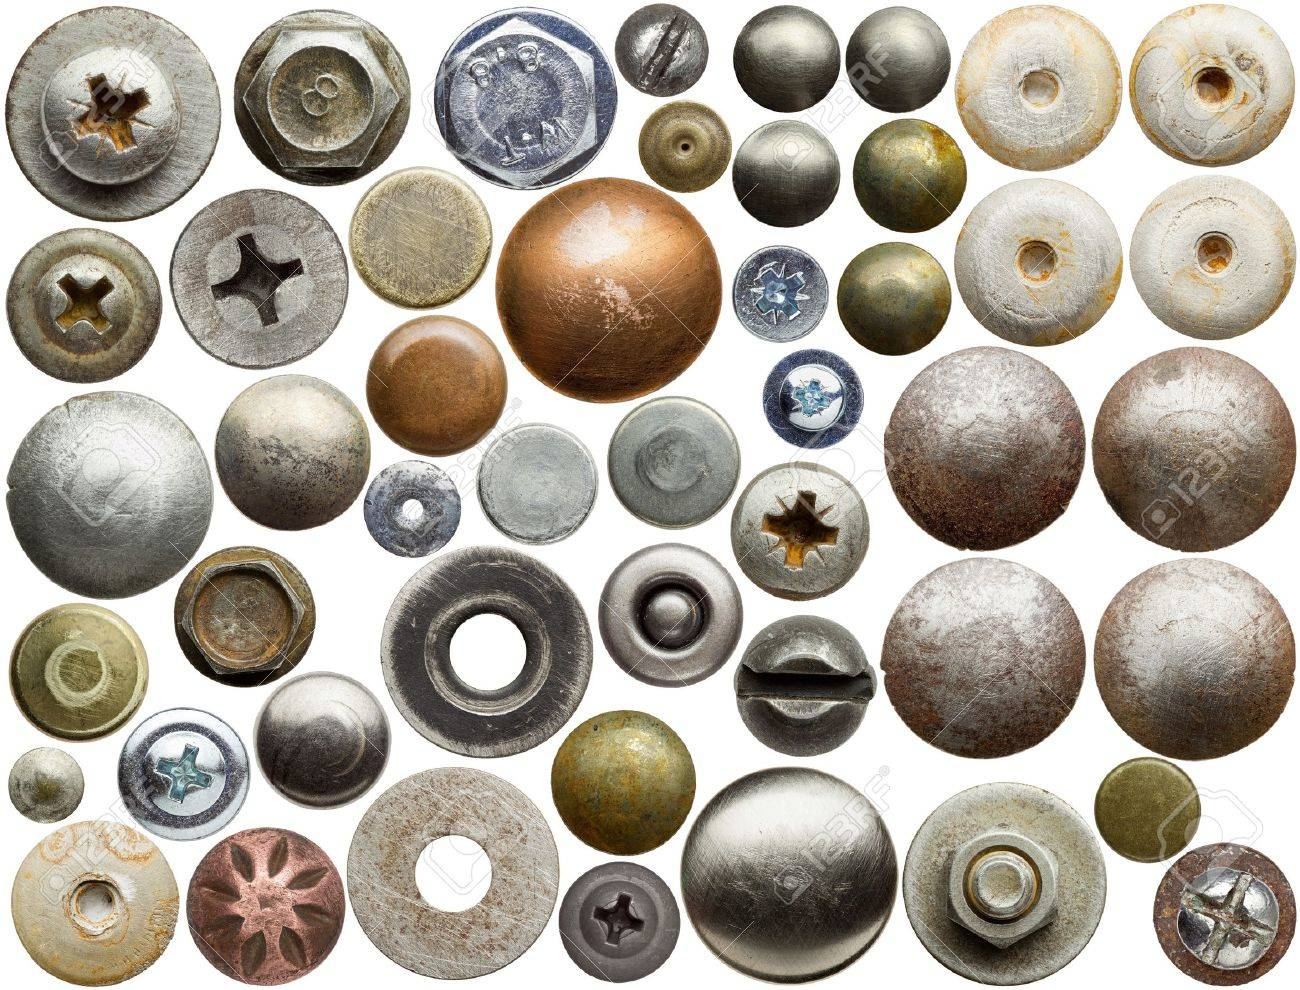 Screw heads, nuts, rivets and other metal details. Stock Photo - 16236002